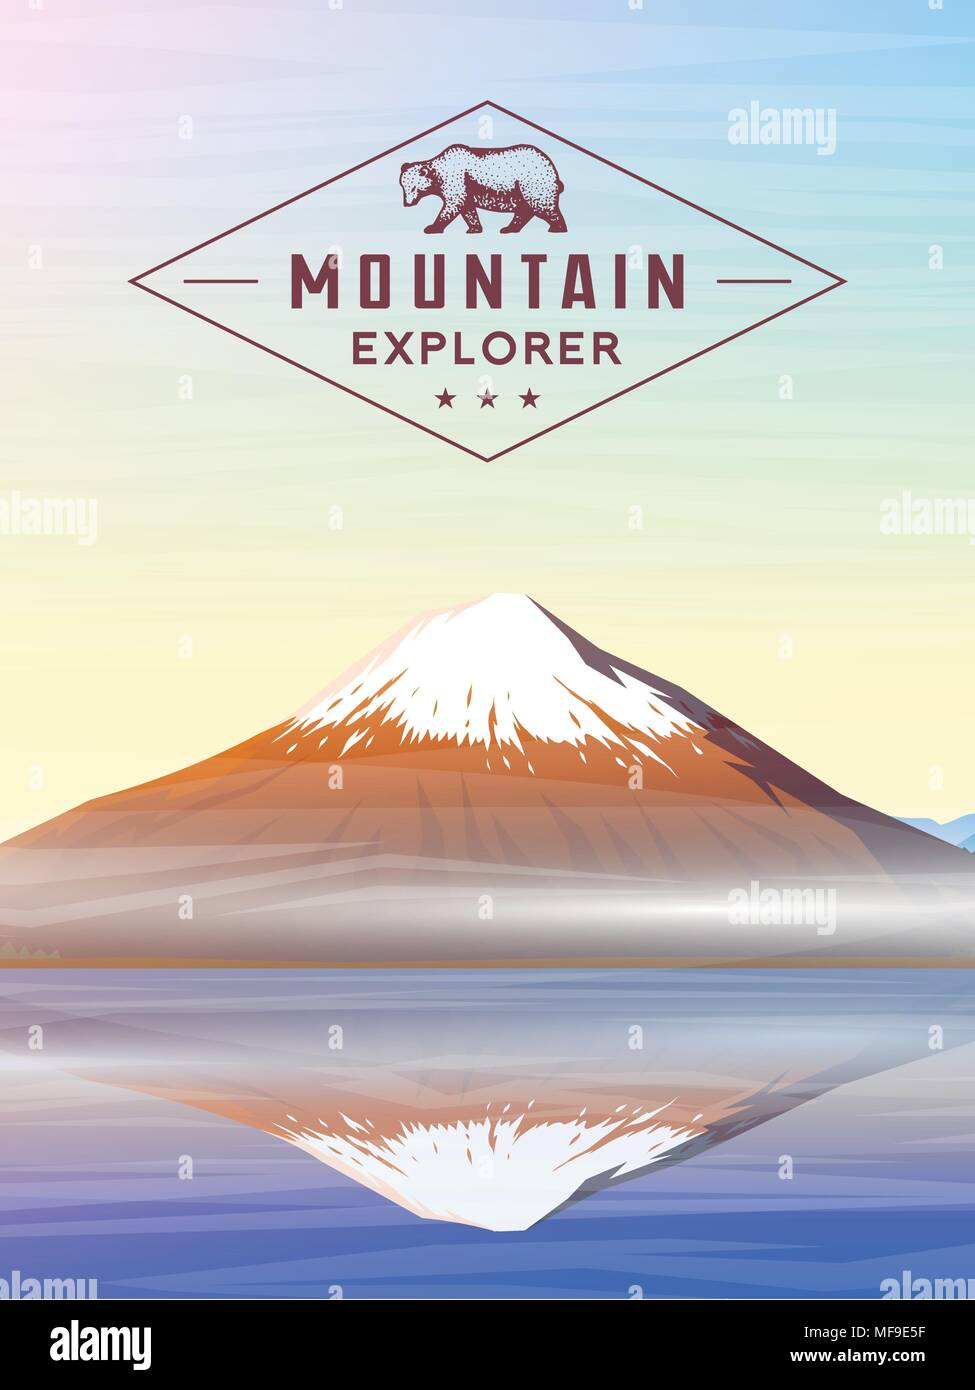 Travel Brochure Cover Stockfotos & Travel Brochure Cover Bilder - Alamy